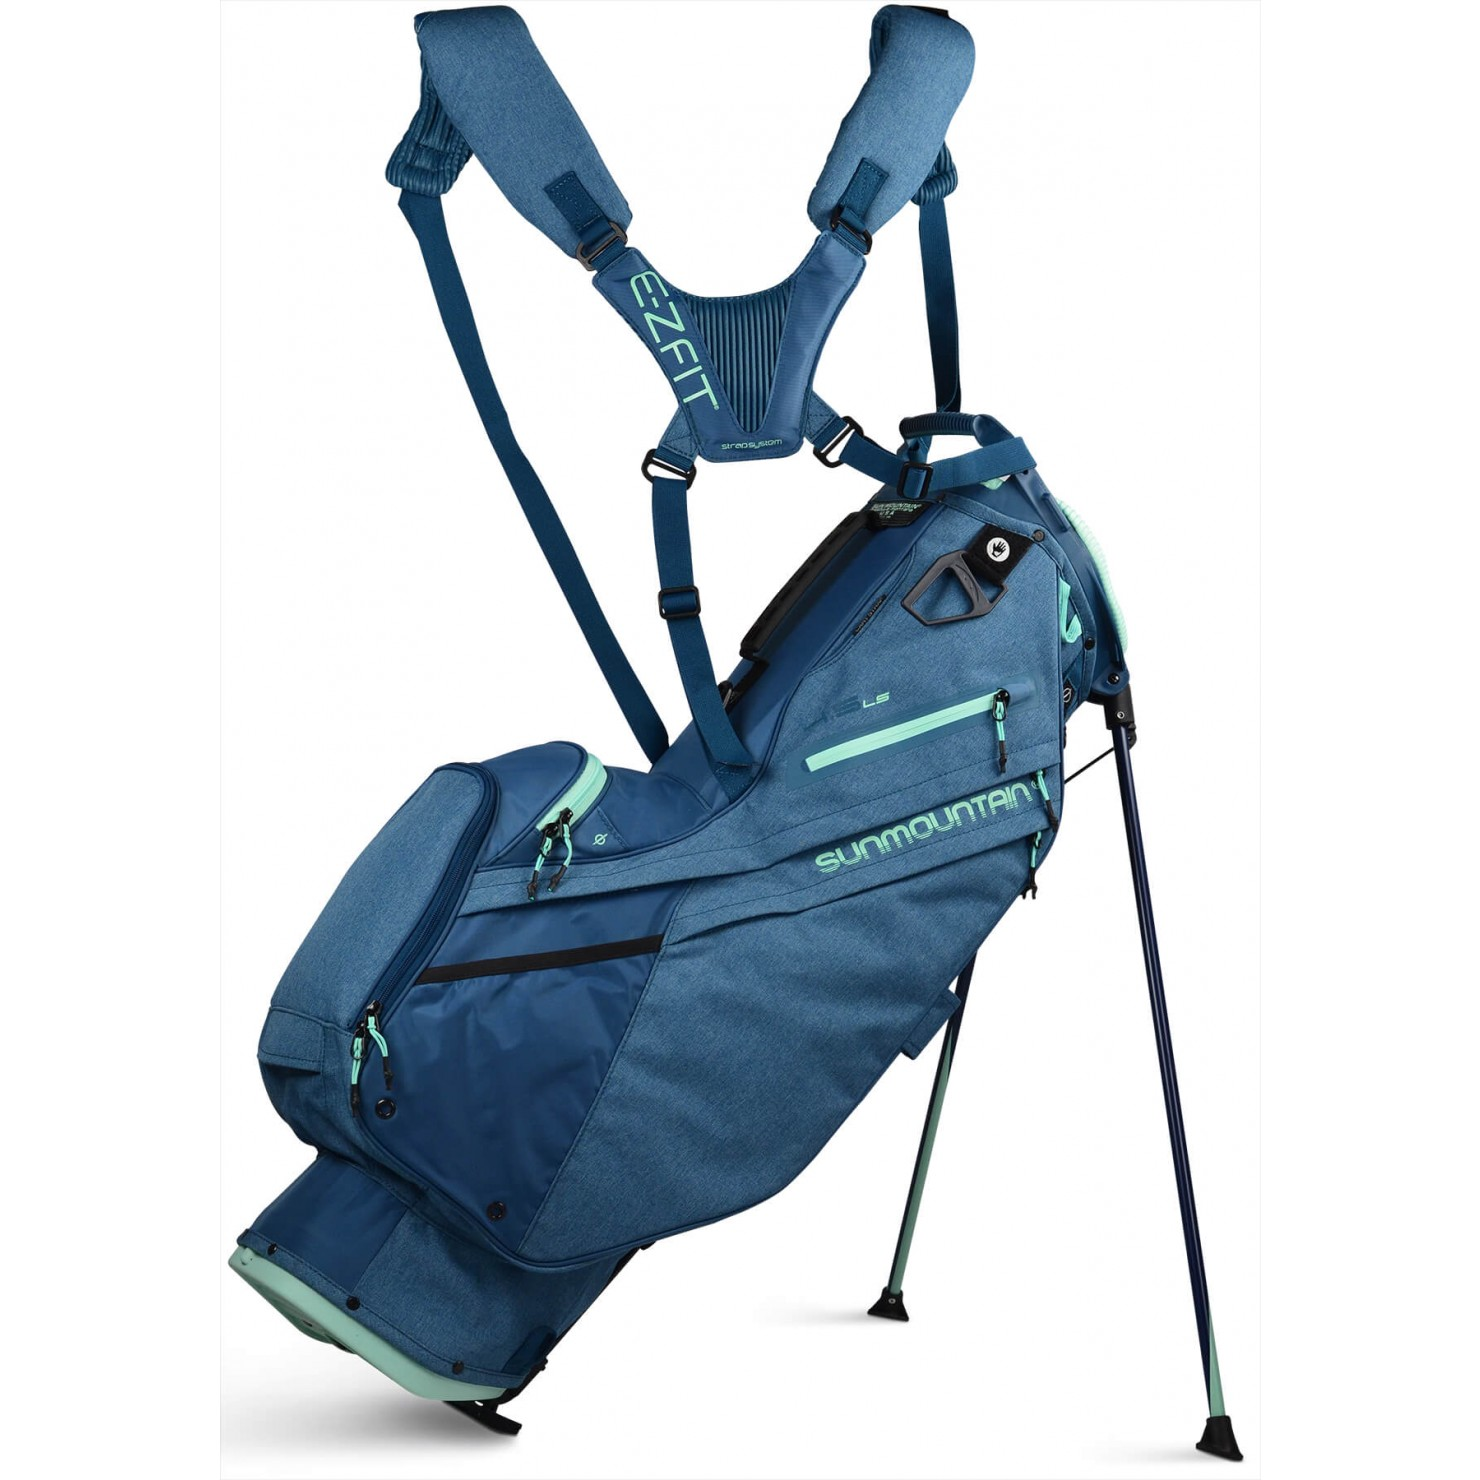 Sun Mountain 2020 Women's 4.5 LS Stand Bag